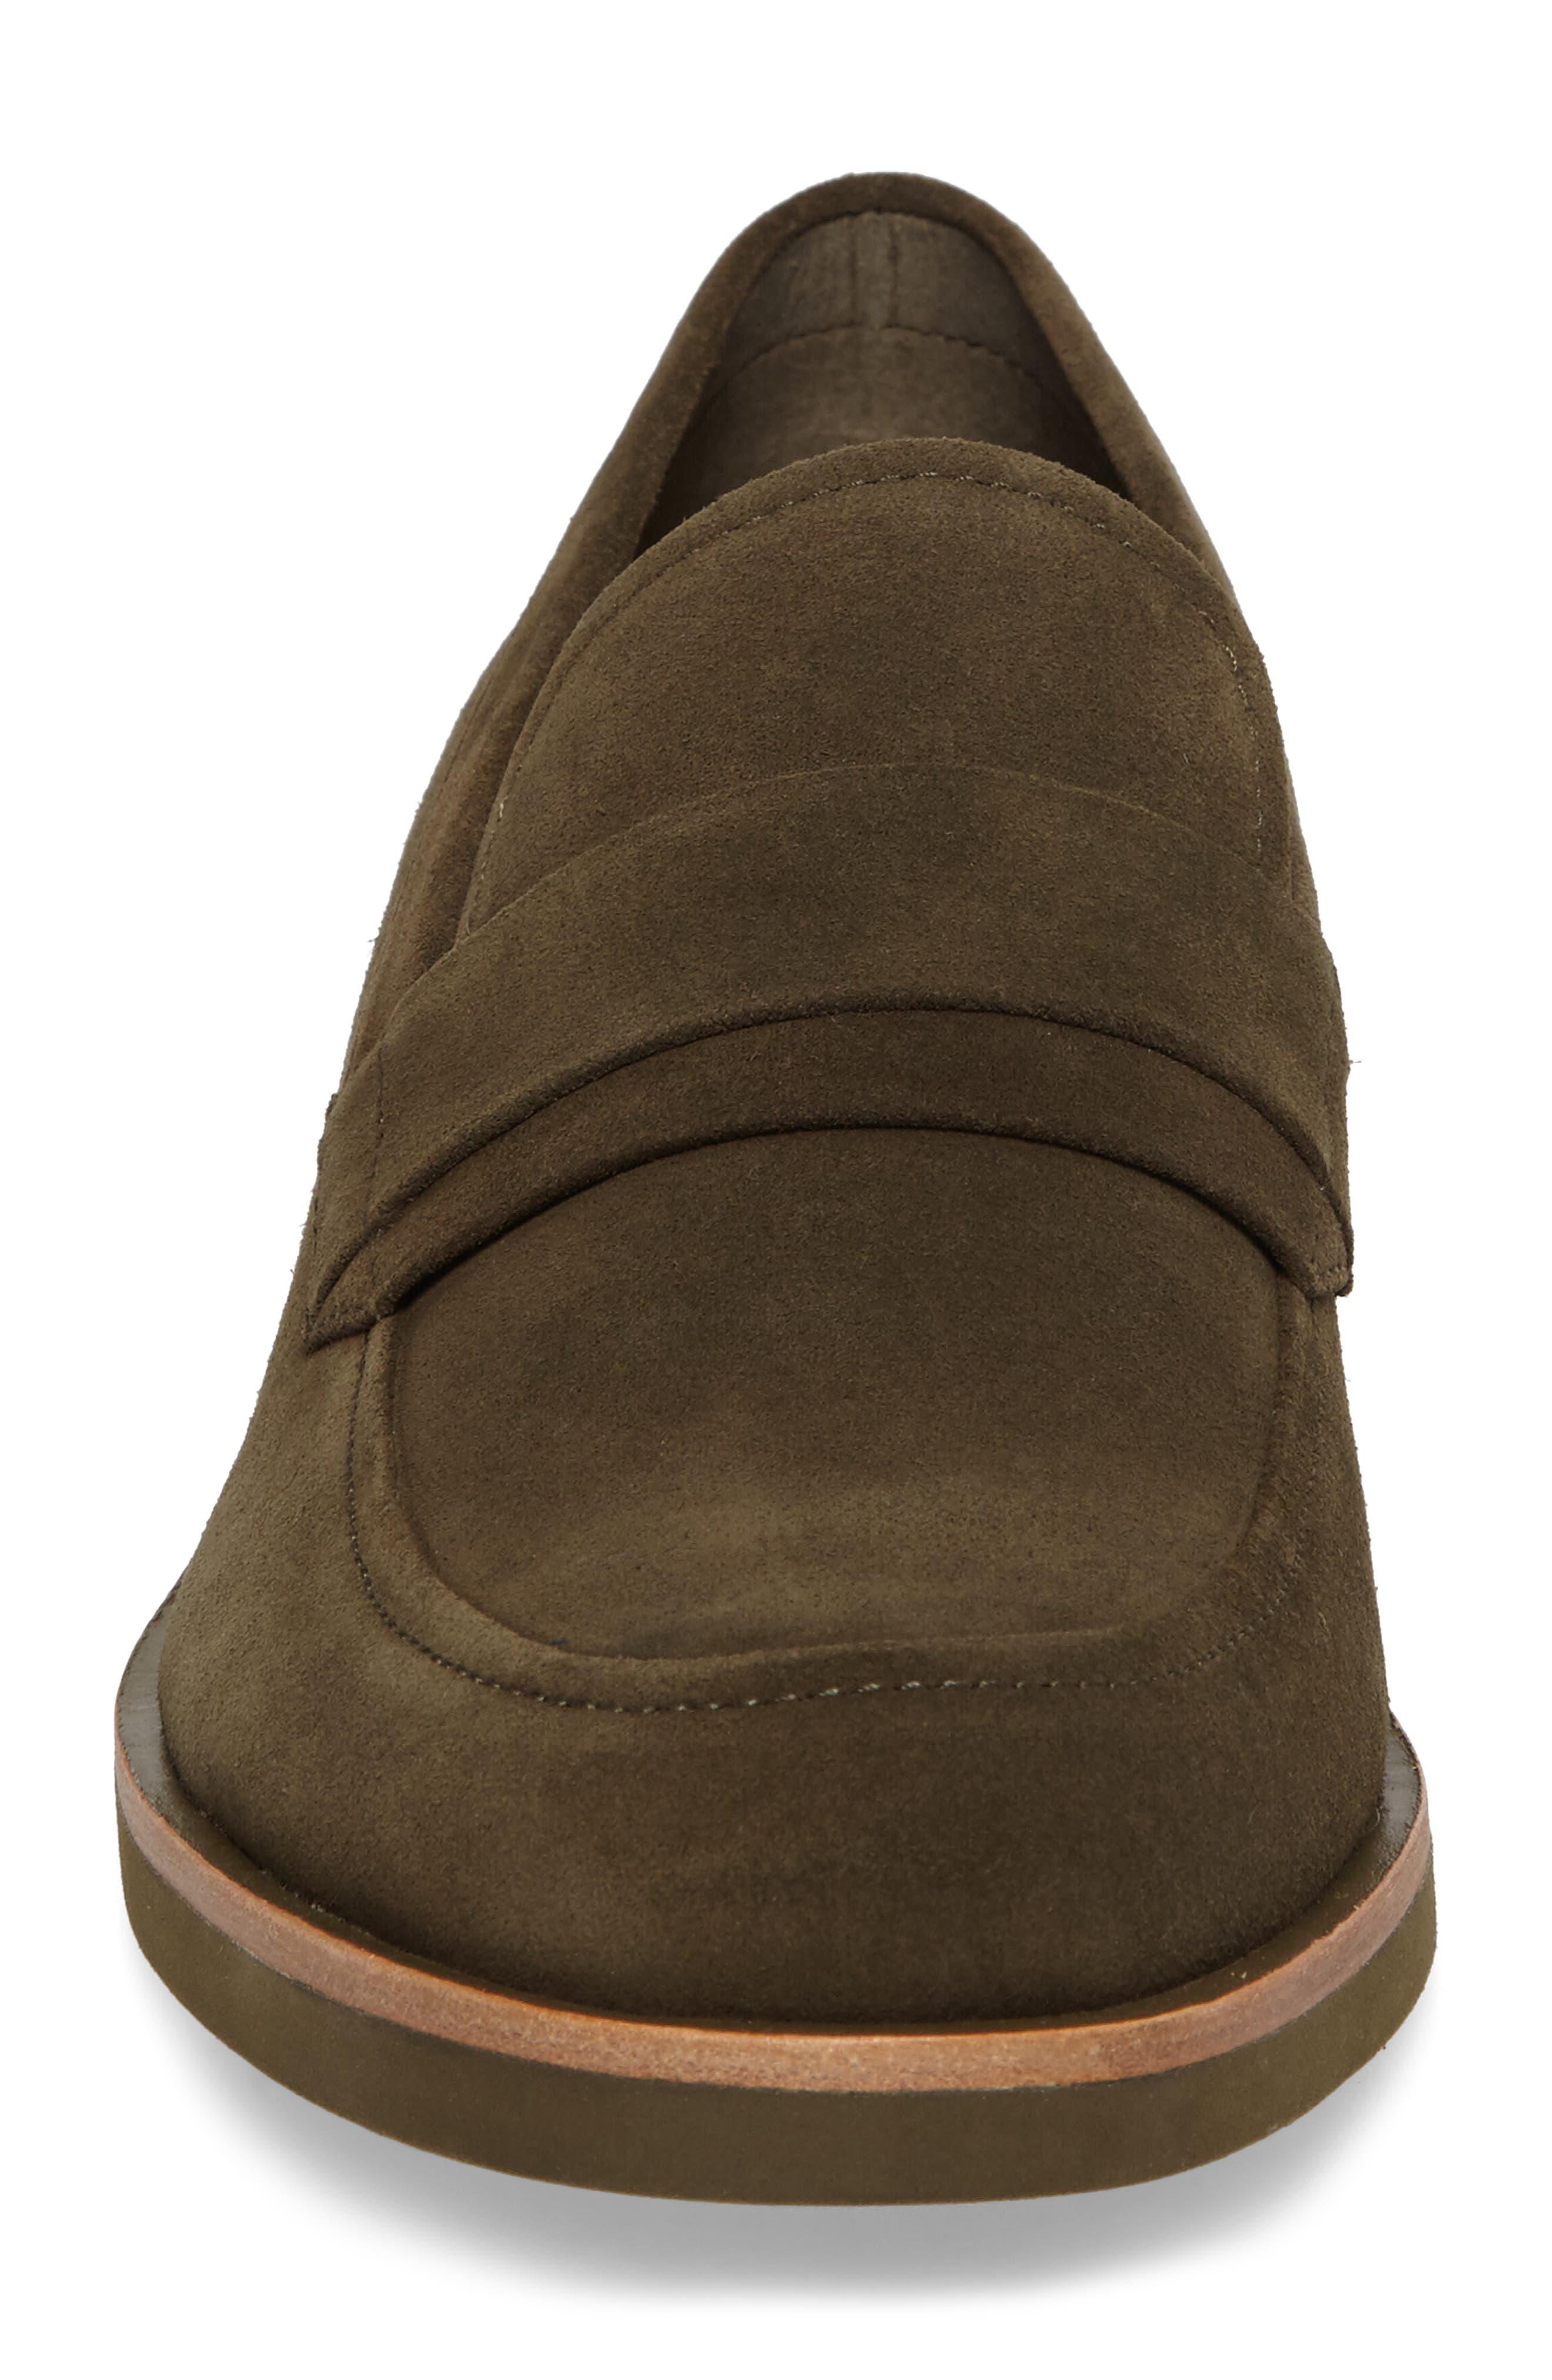 Forbes Loafer,                             Alternate thumbnail 11, color,